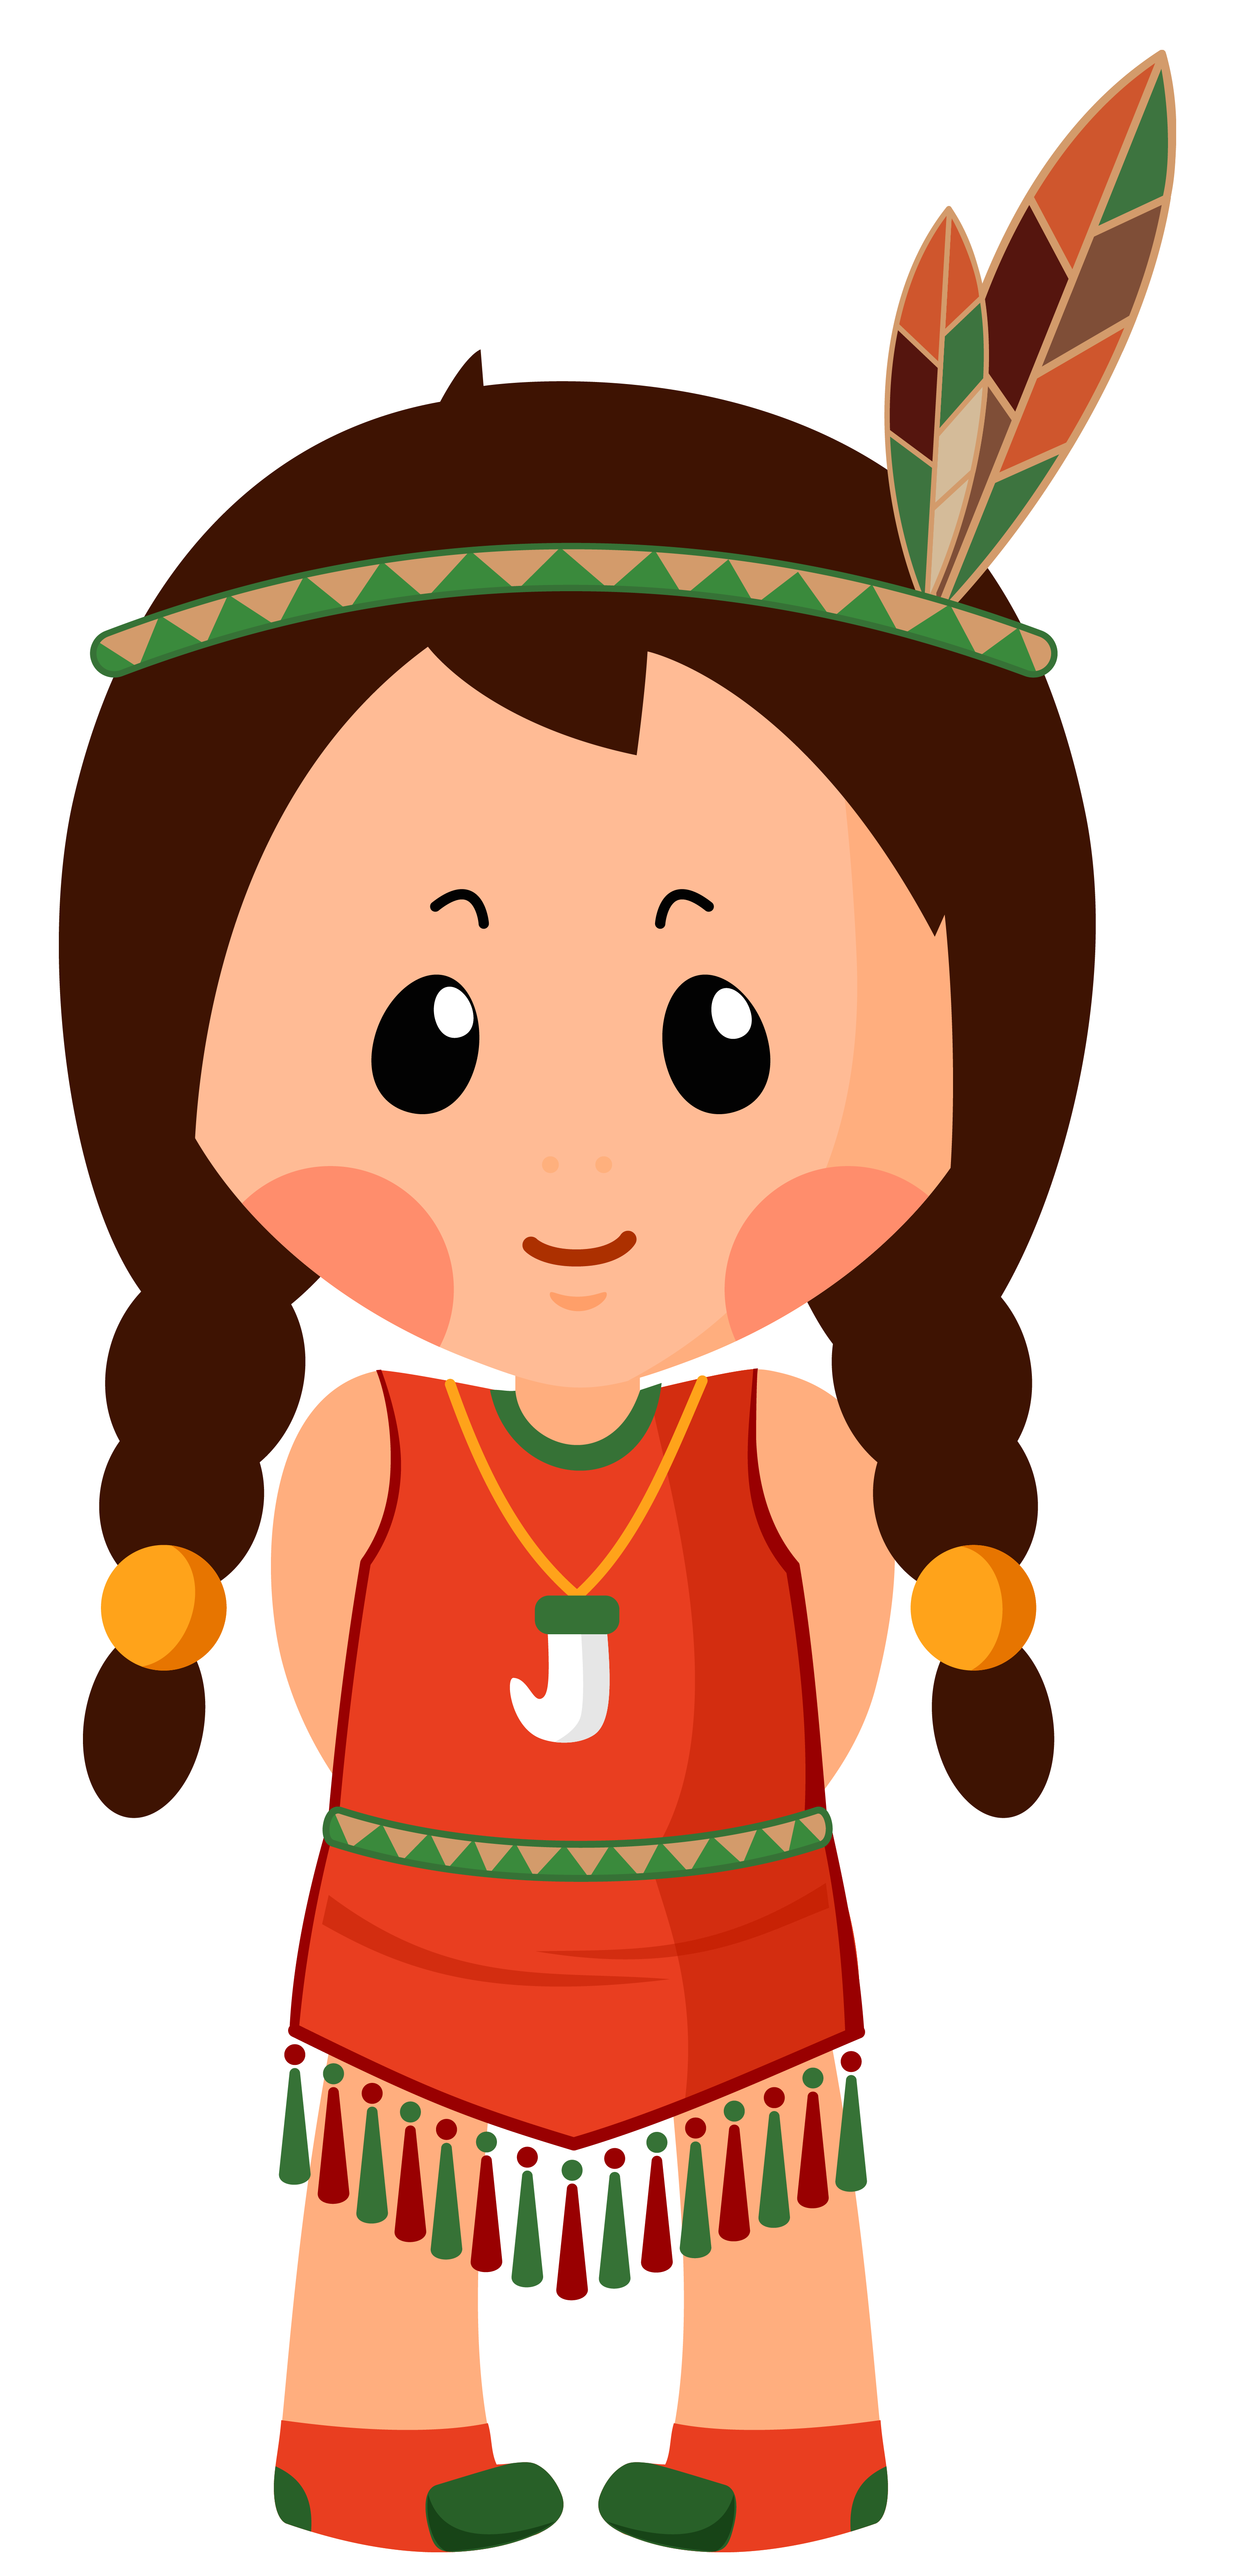 freeuse download Girl clipar png image. Native american clipart